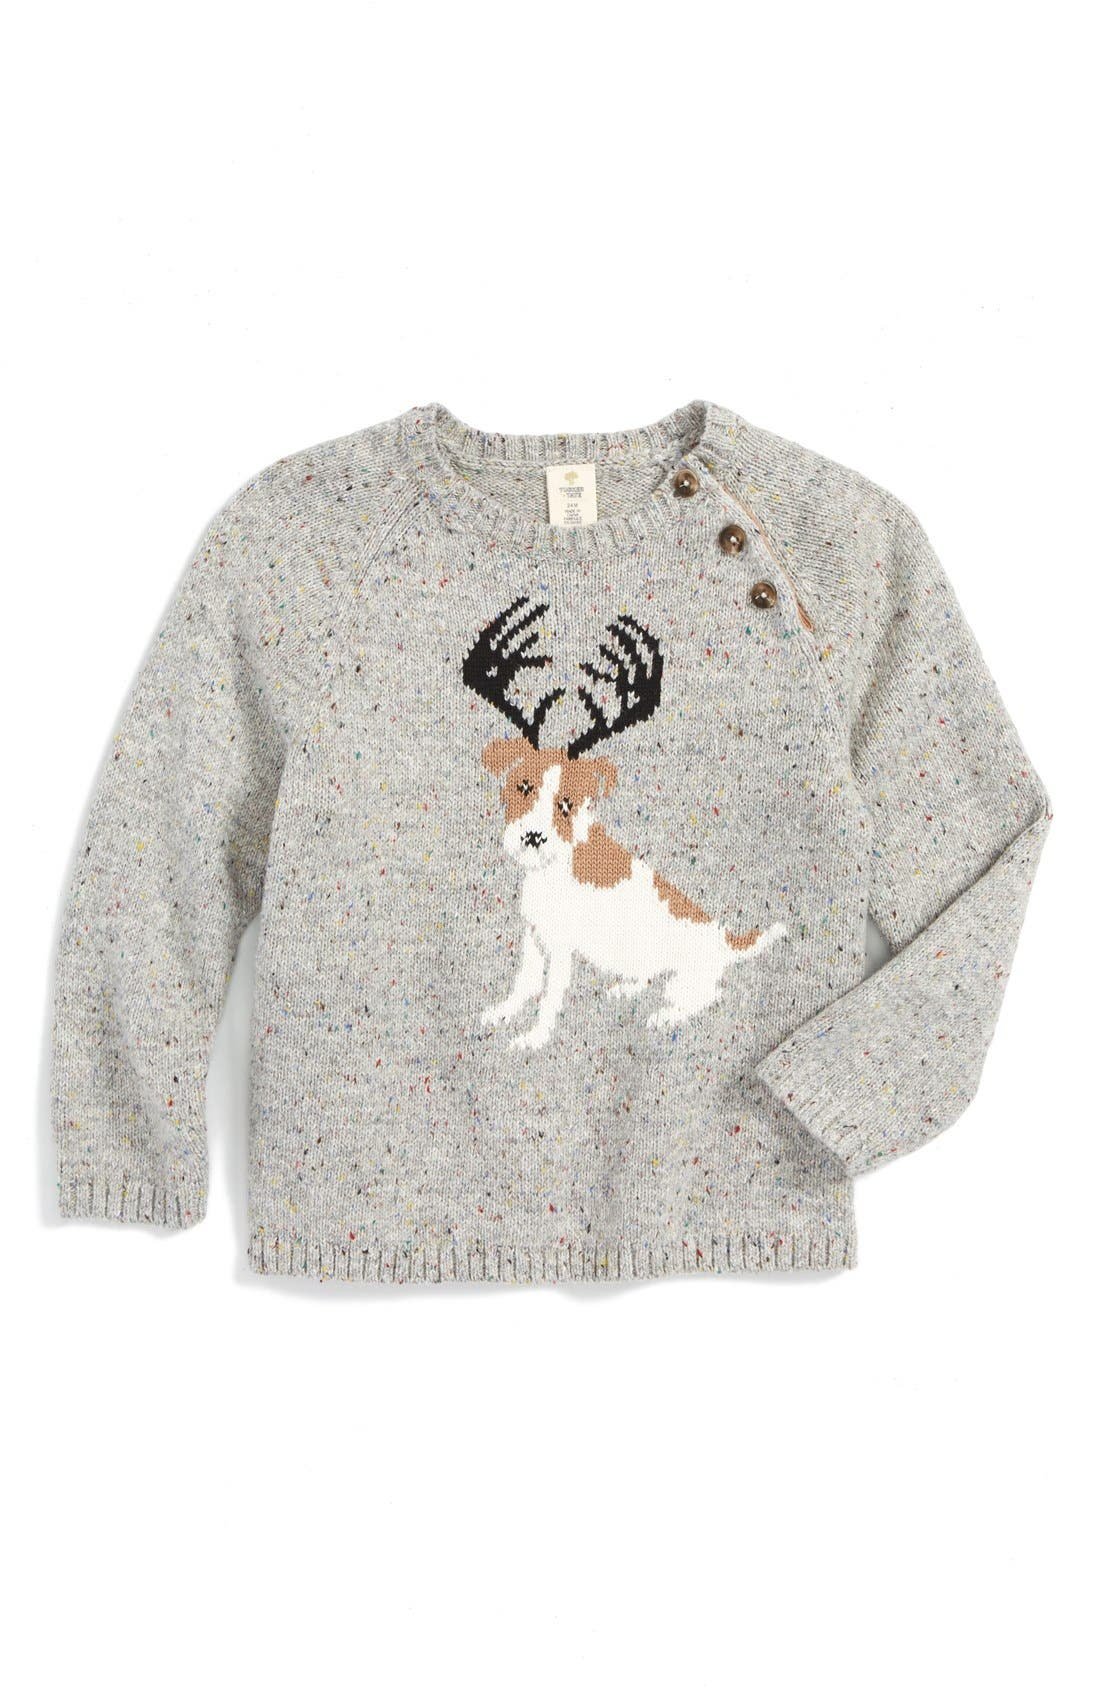 Alternate Image 1 Selected - Tucker + Tate 'Reindeer Dog' Intarsia Knit Sweater (Baby Boys)